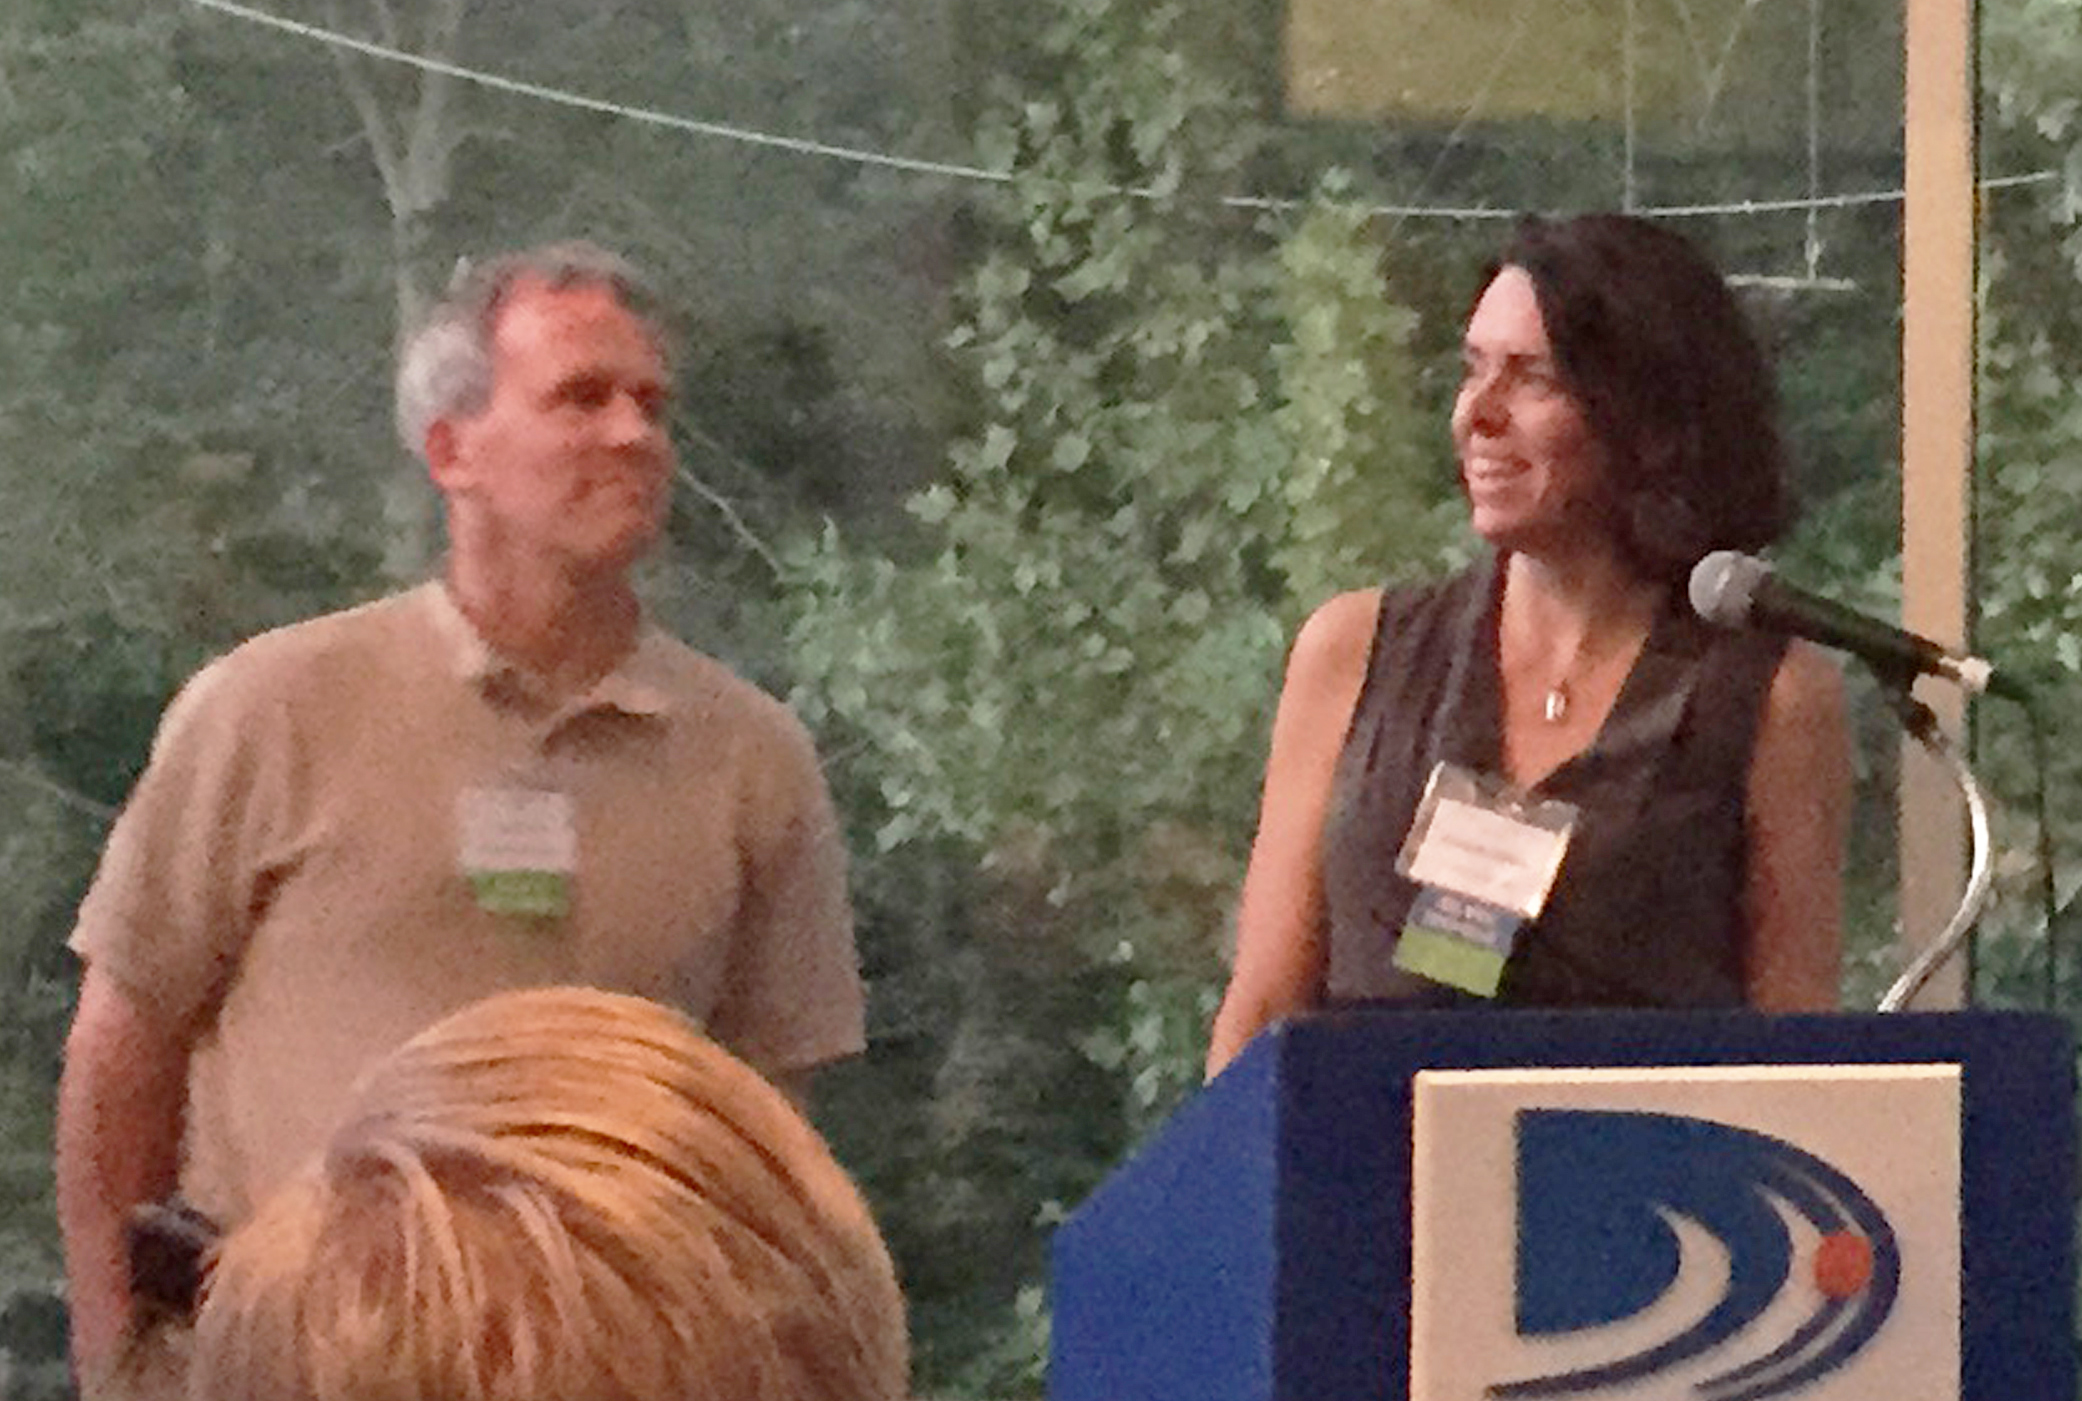 Chris Trolle (BPC Green Builders) + Elizabeth DiSalvo (Trillium Architects) accept the Residential Award of Honor at the CTGBC event.